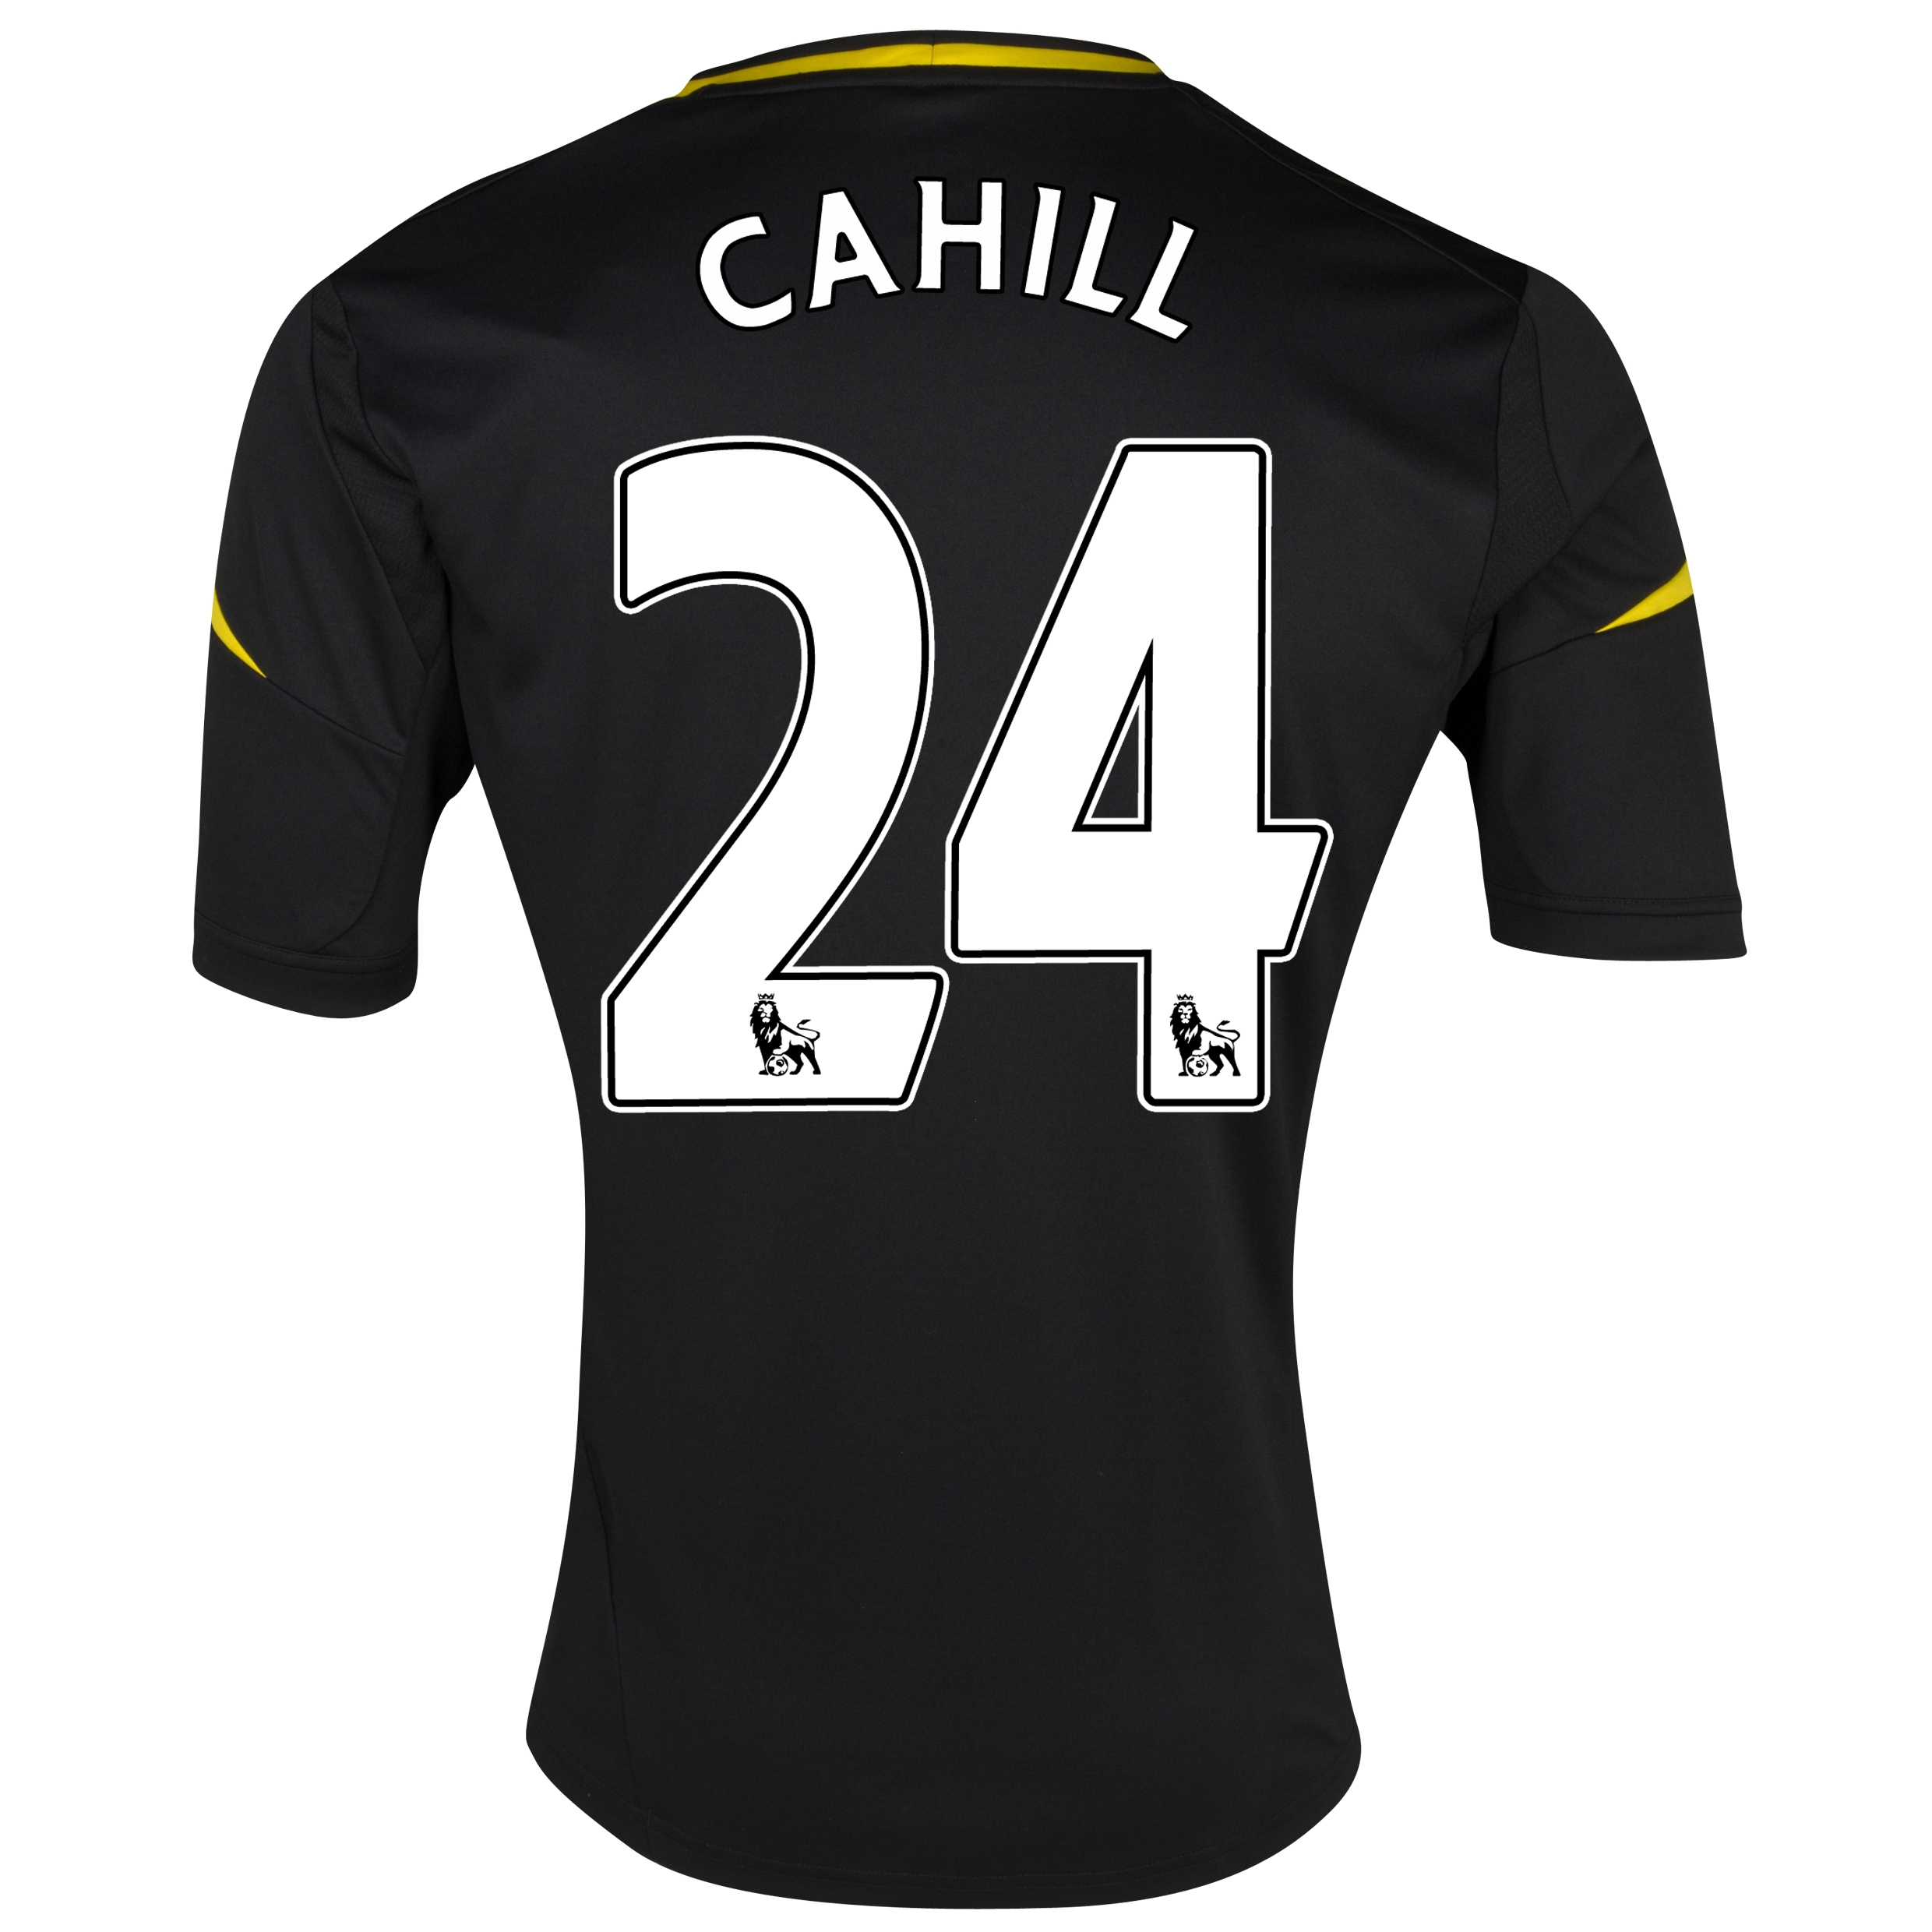 Chelsea Third Shirt 2012/13 - Youths with Cahill 24 printing